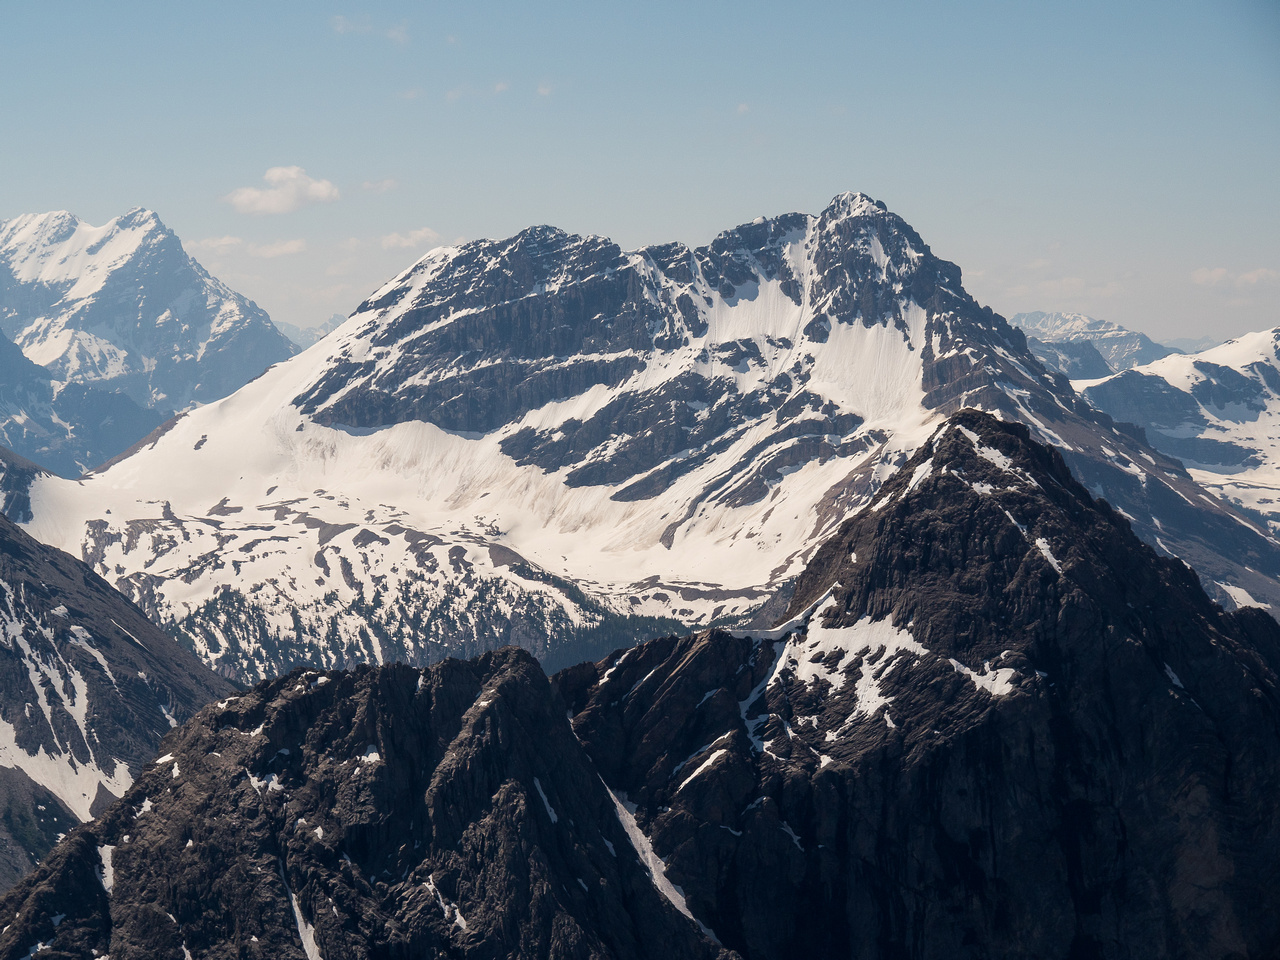 White Man Mountain looms over an outlier of Mount Currie.